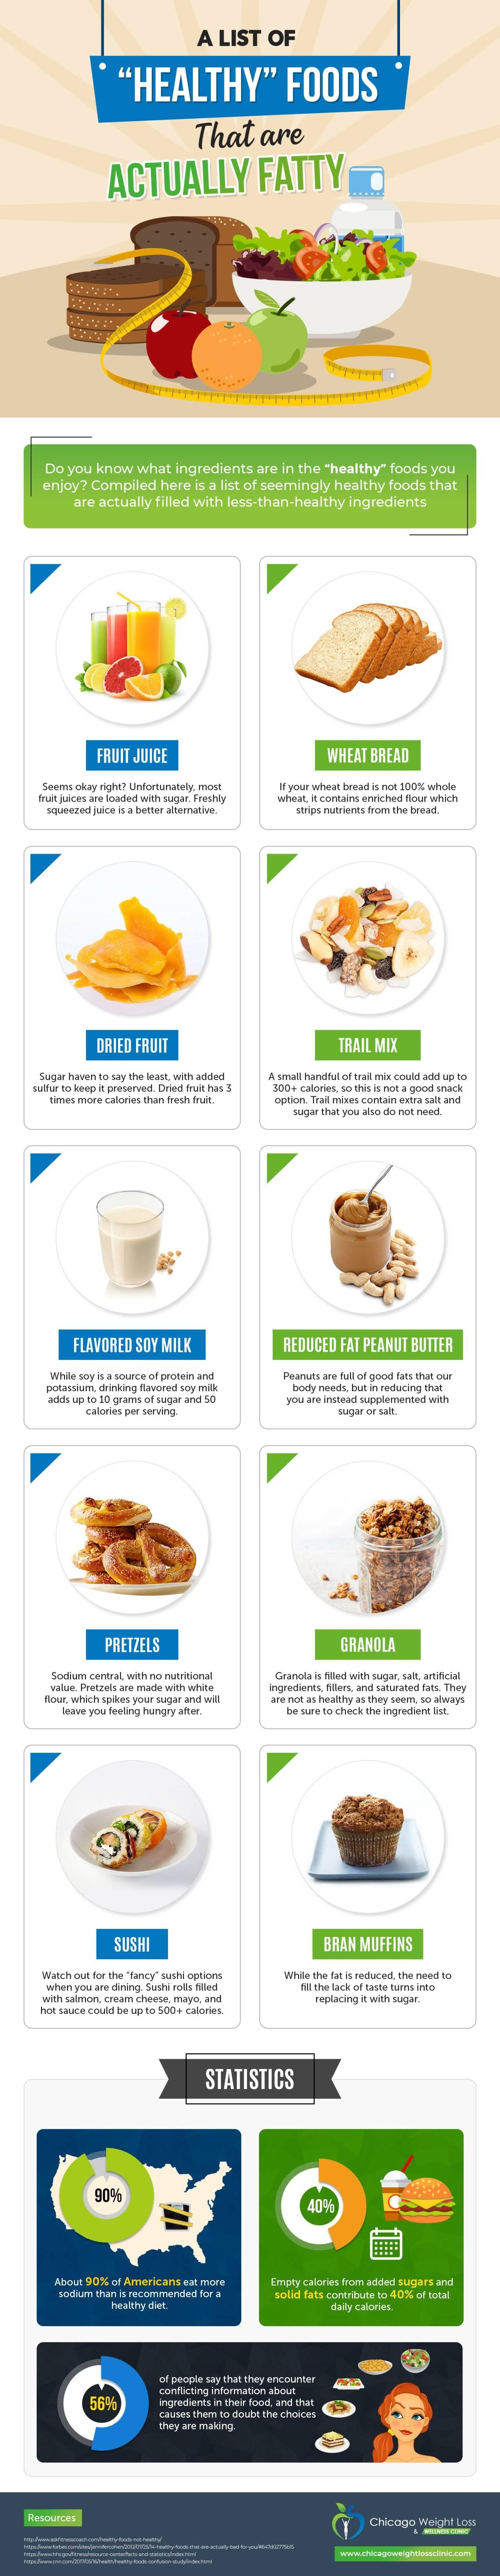 A List of Healthy Foods That Are Actually Fatty #Infographic